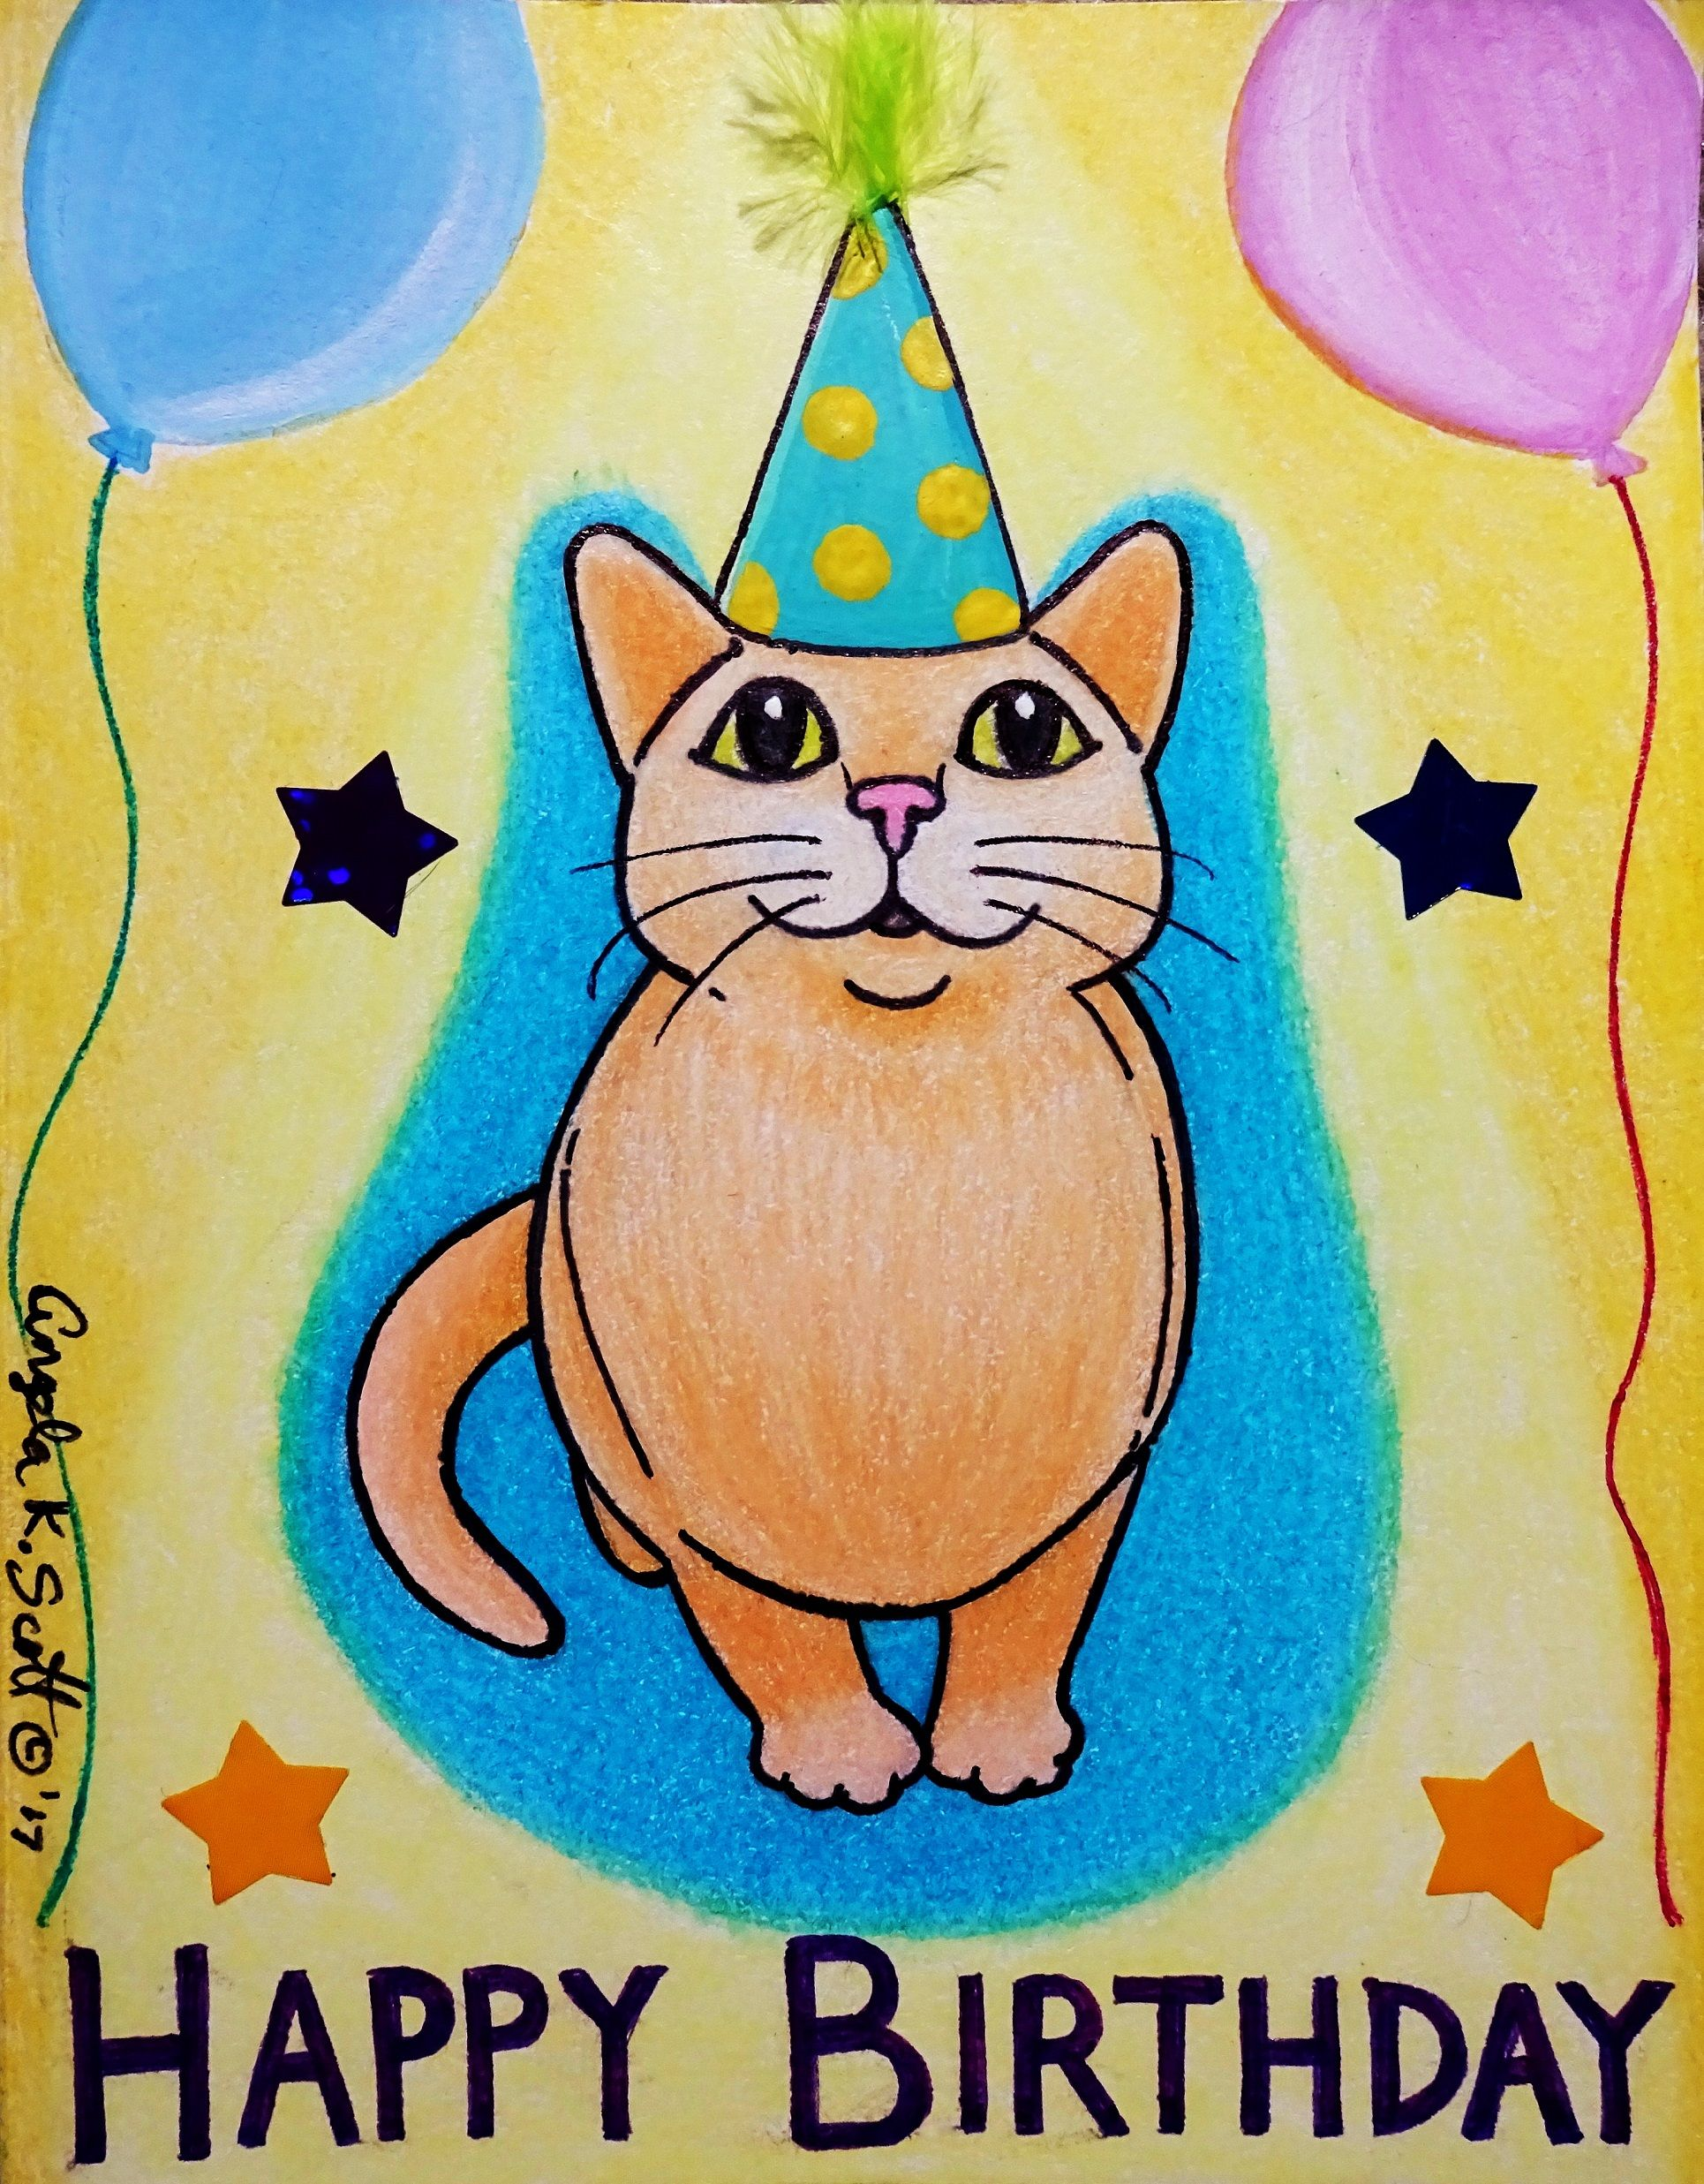 Quot Happy Birthday Quot Cat My Artwork Of A Bday Hat Wearing Cat